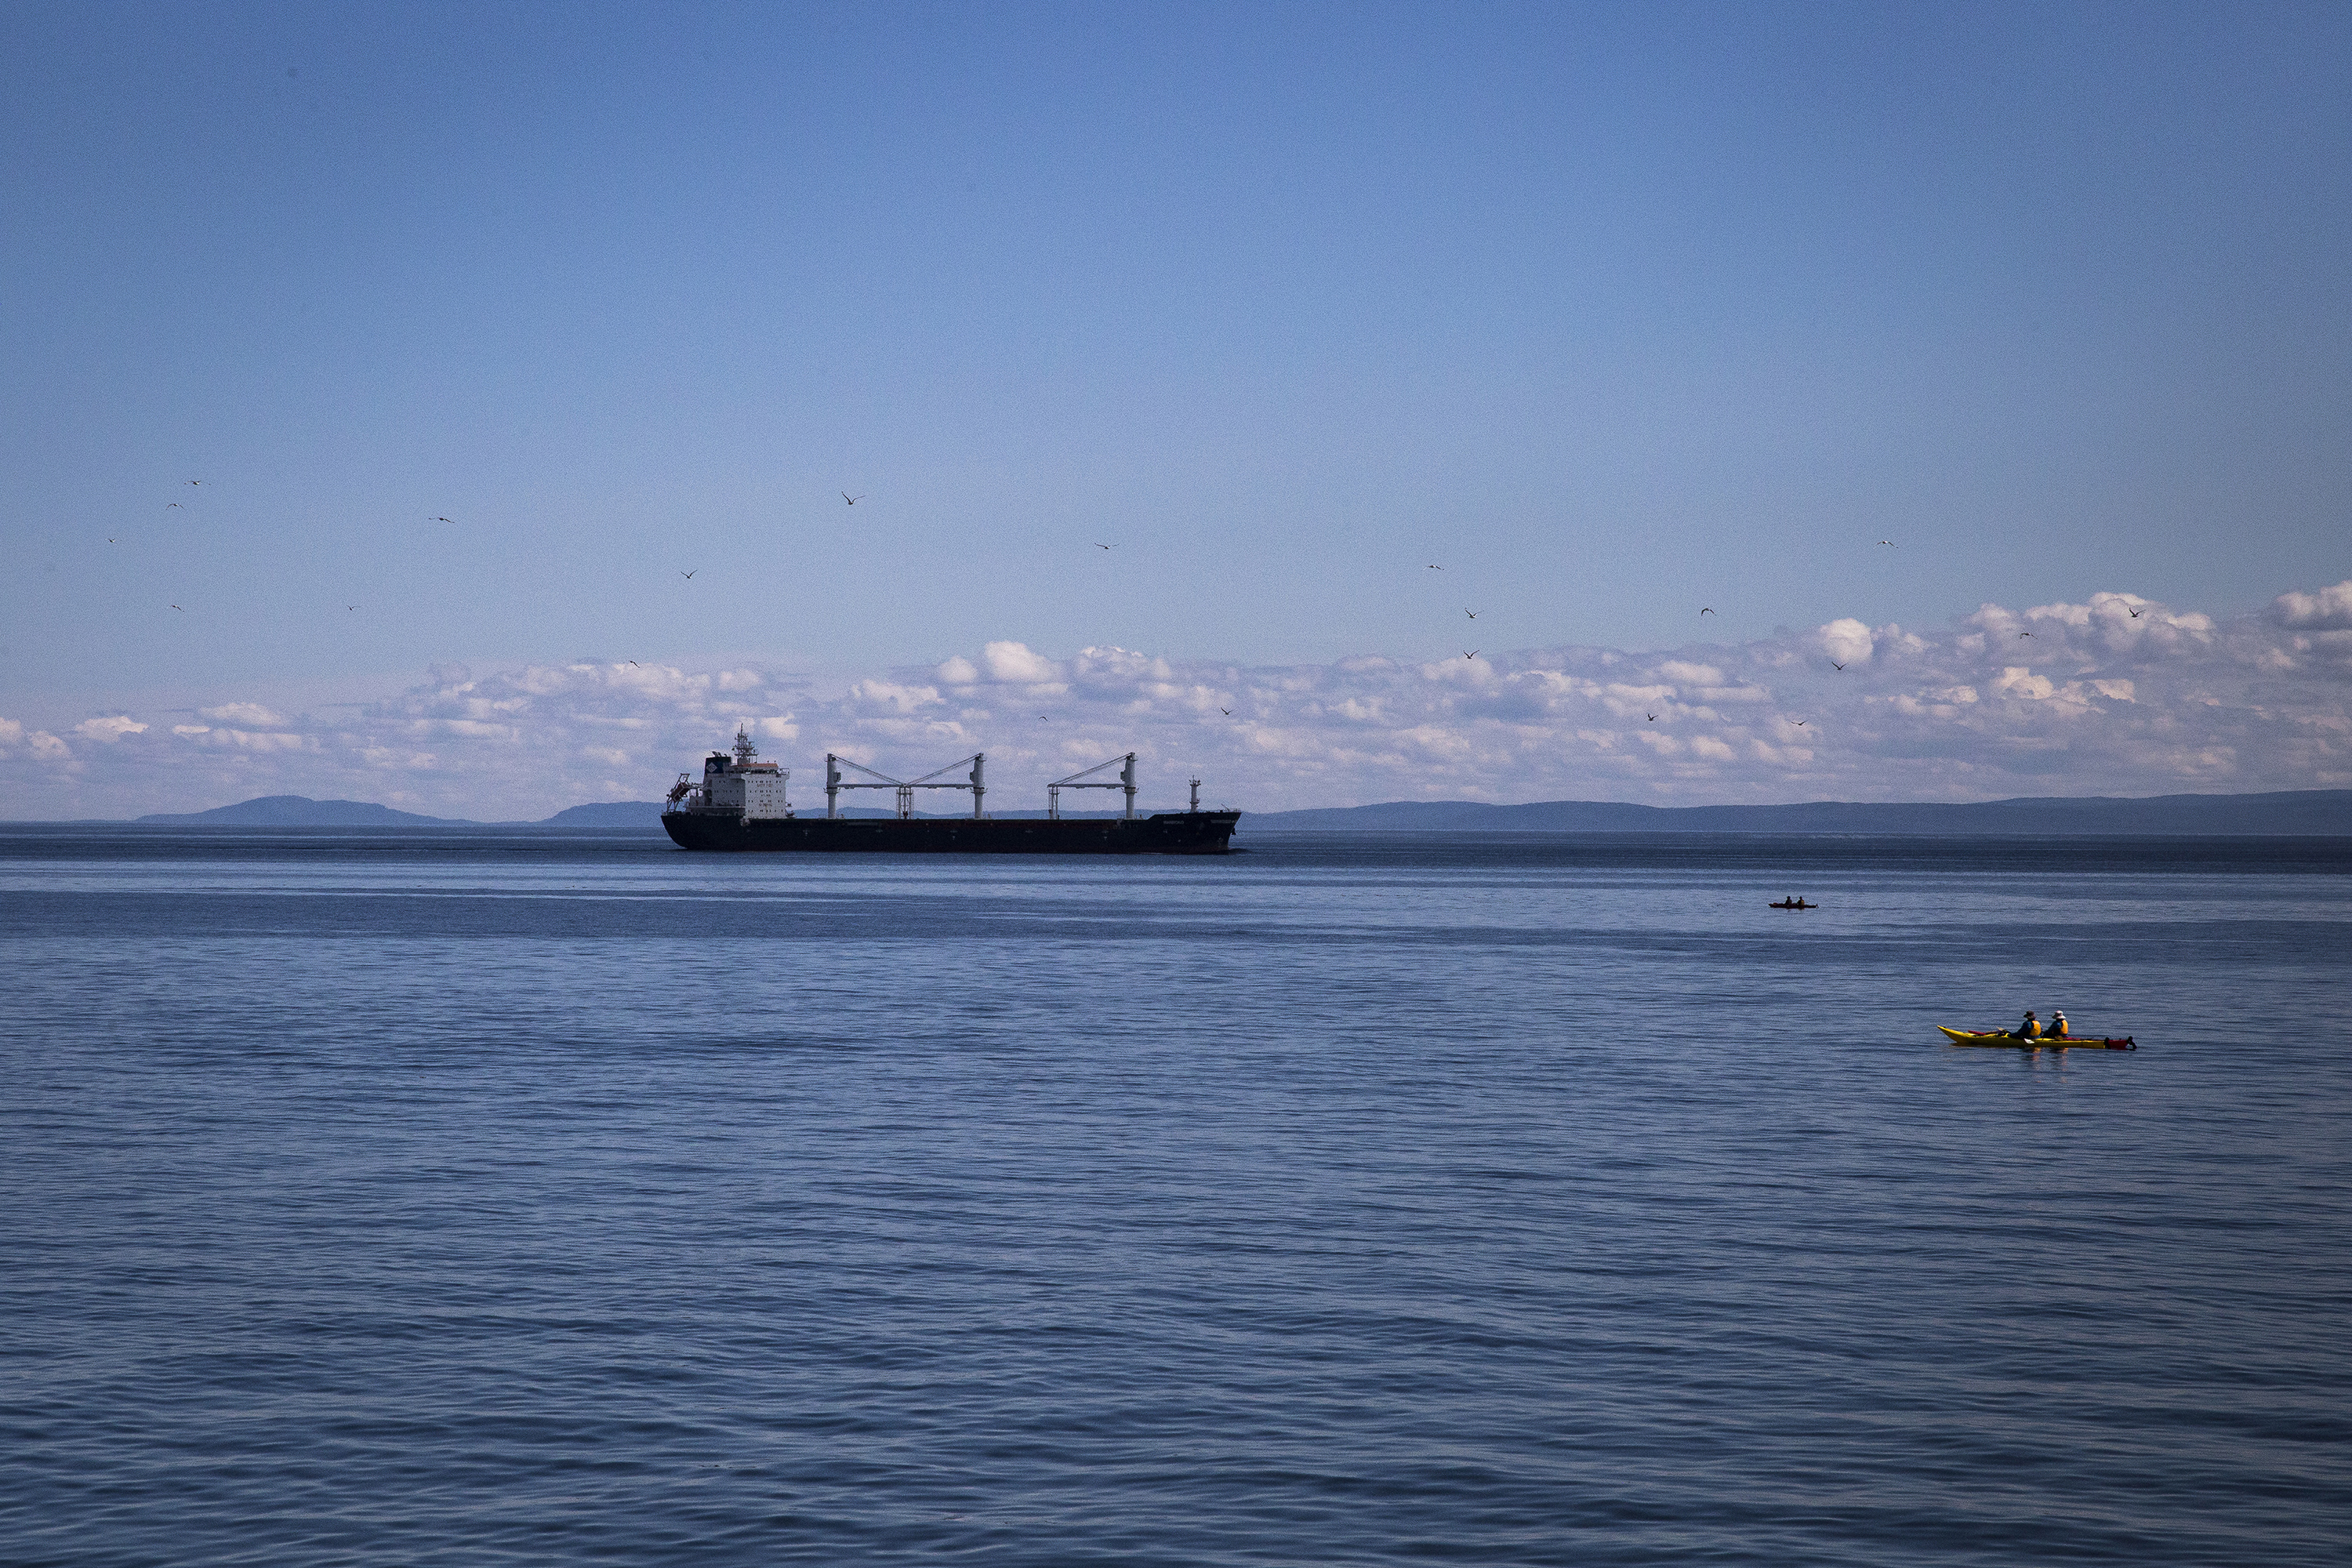 jp-valery-jpvalery-photographer-down-the-river-st-lawrence-quebec-1006